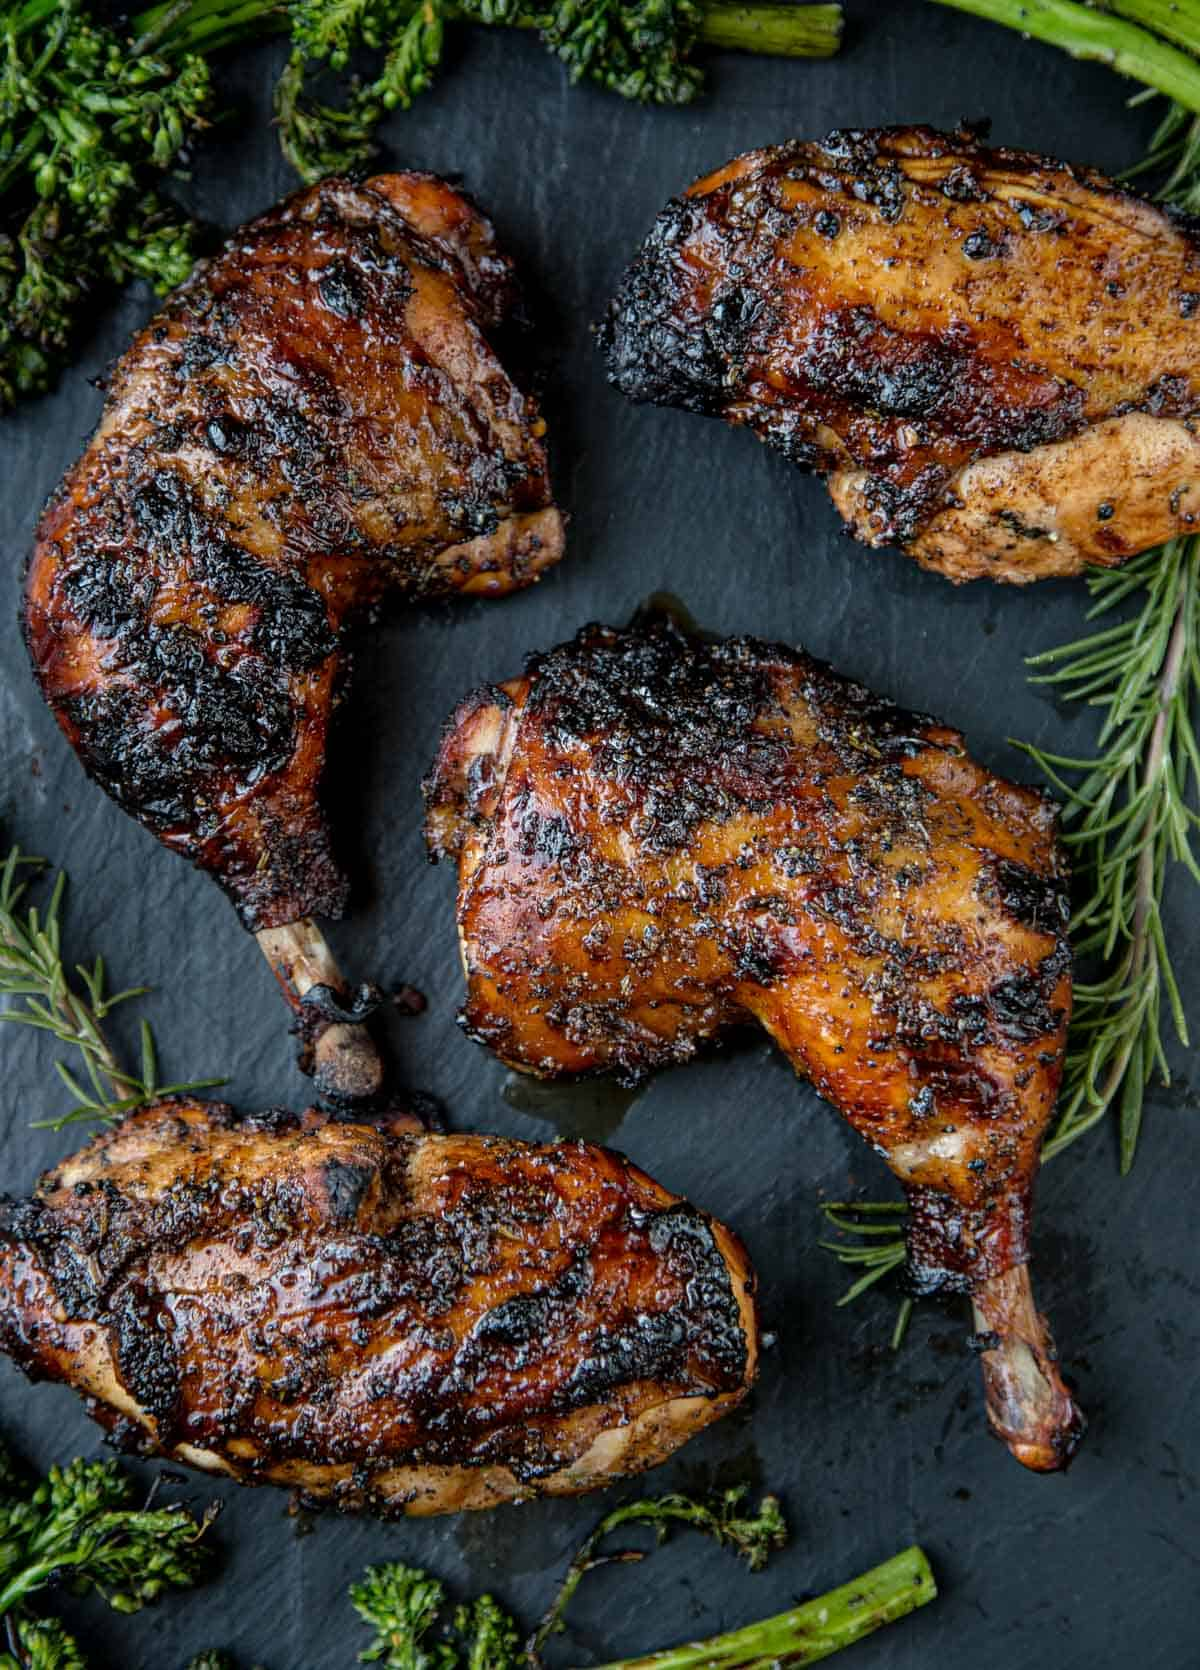 Pieces of Grilled Balsamic Glazed Chicken on a black platter